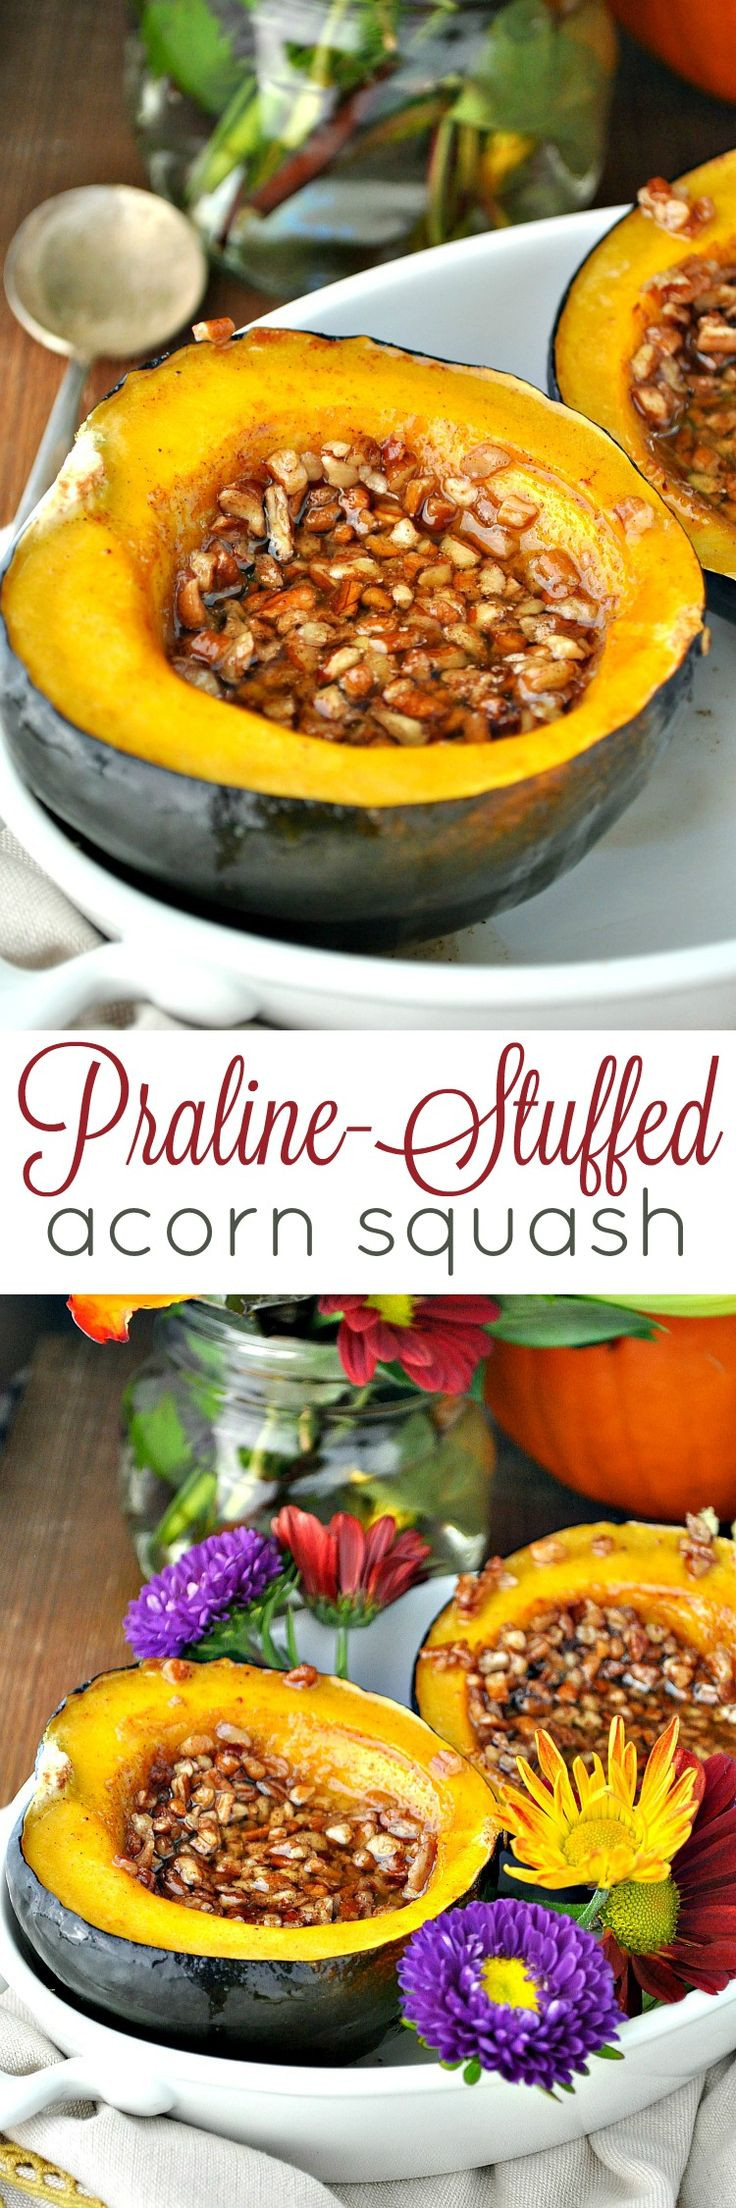 Easy Side Dishes For Thanksgiving  Best 25 Easy thanksgiving side dishes ideas on Pinterest